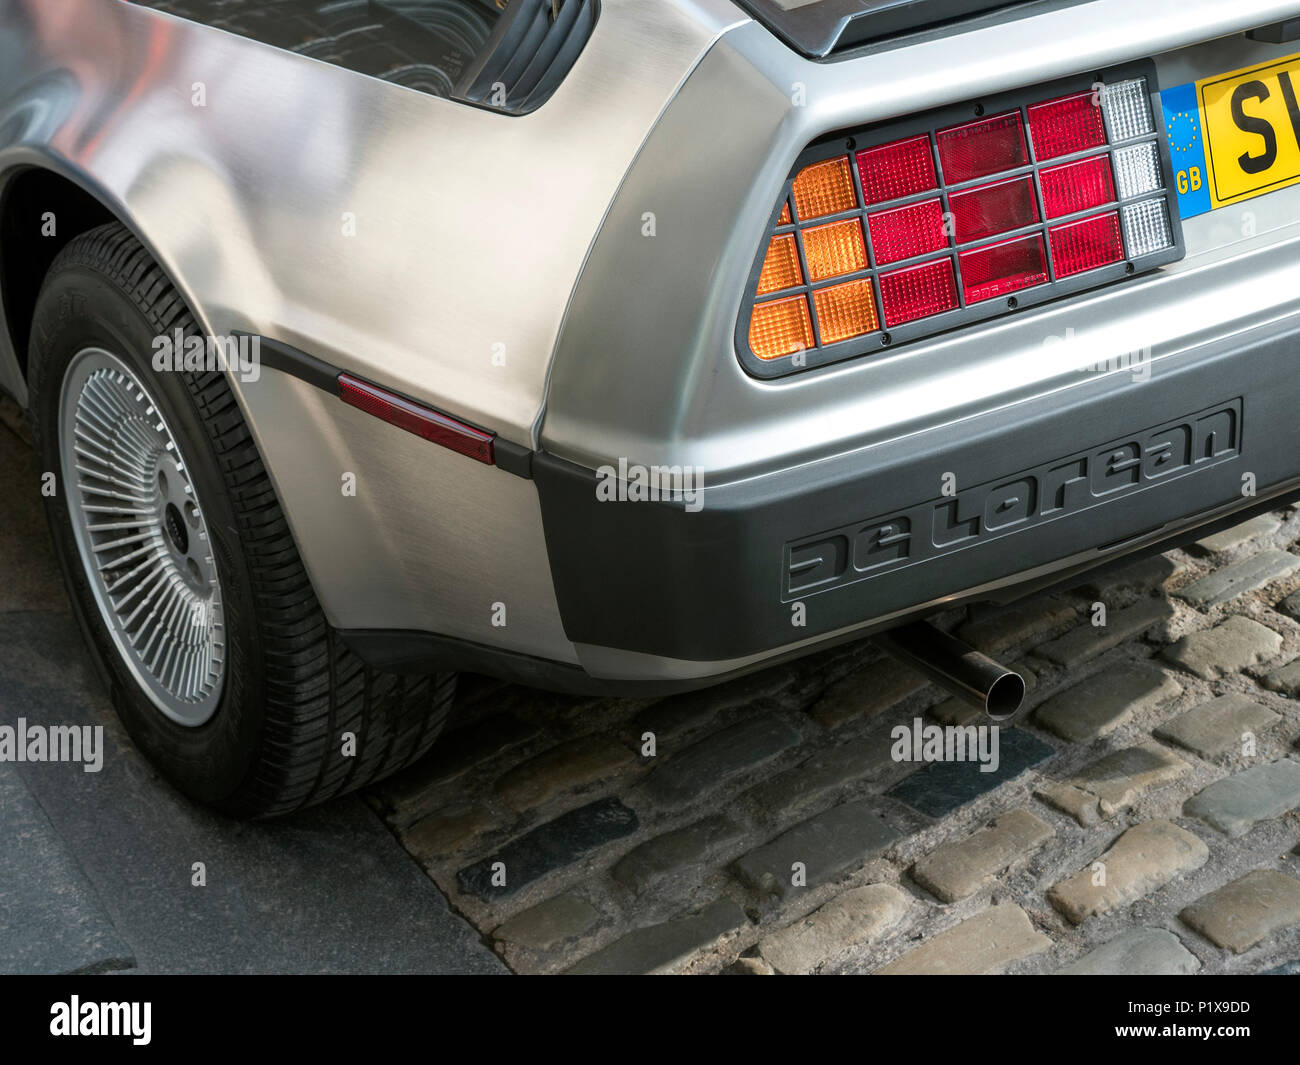 Rear quarter of 1981 DeLorean sports car - Stock Image